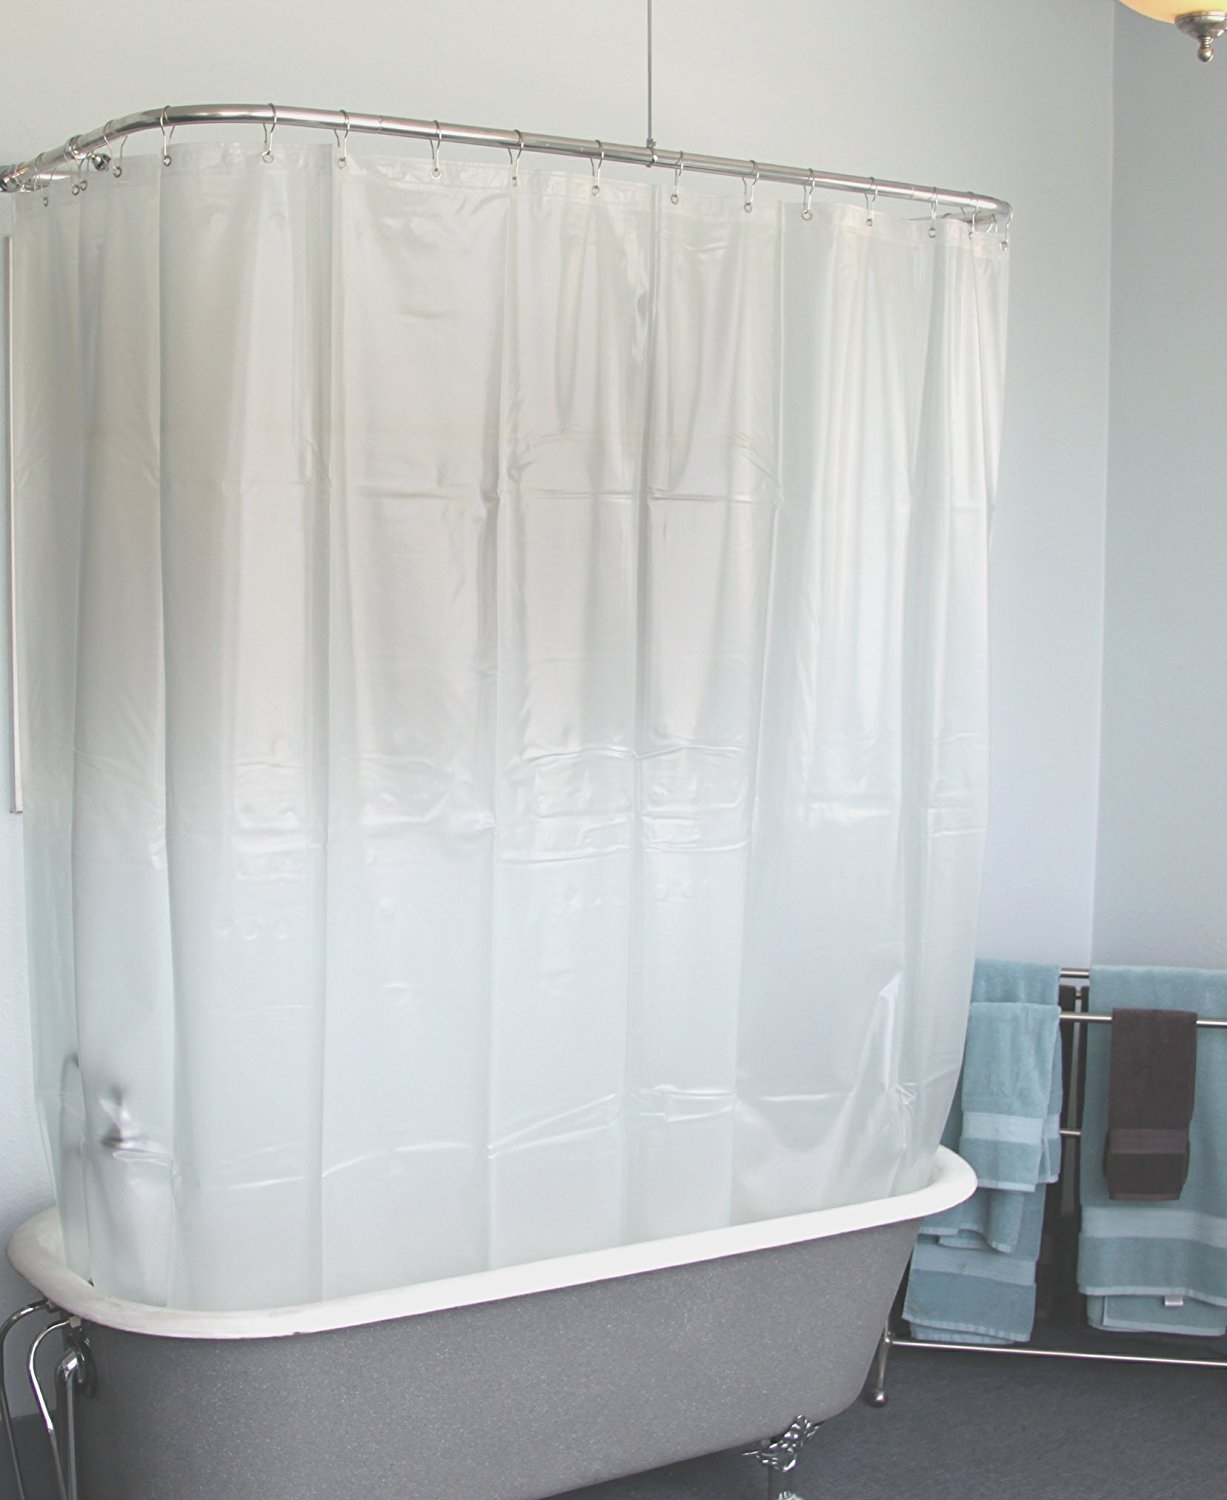 Amazon Extra Wide Vinyl Shower Curtain For A Clawfoot Tub Regarding Claw Tub Shower Curtains (Image 2 of 25)